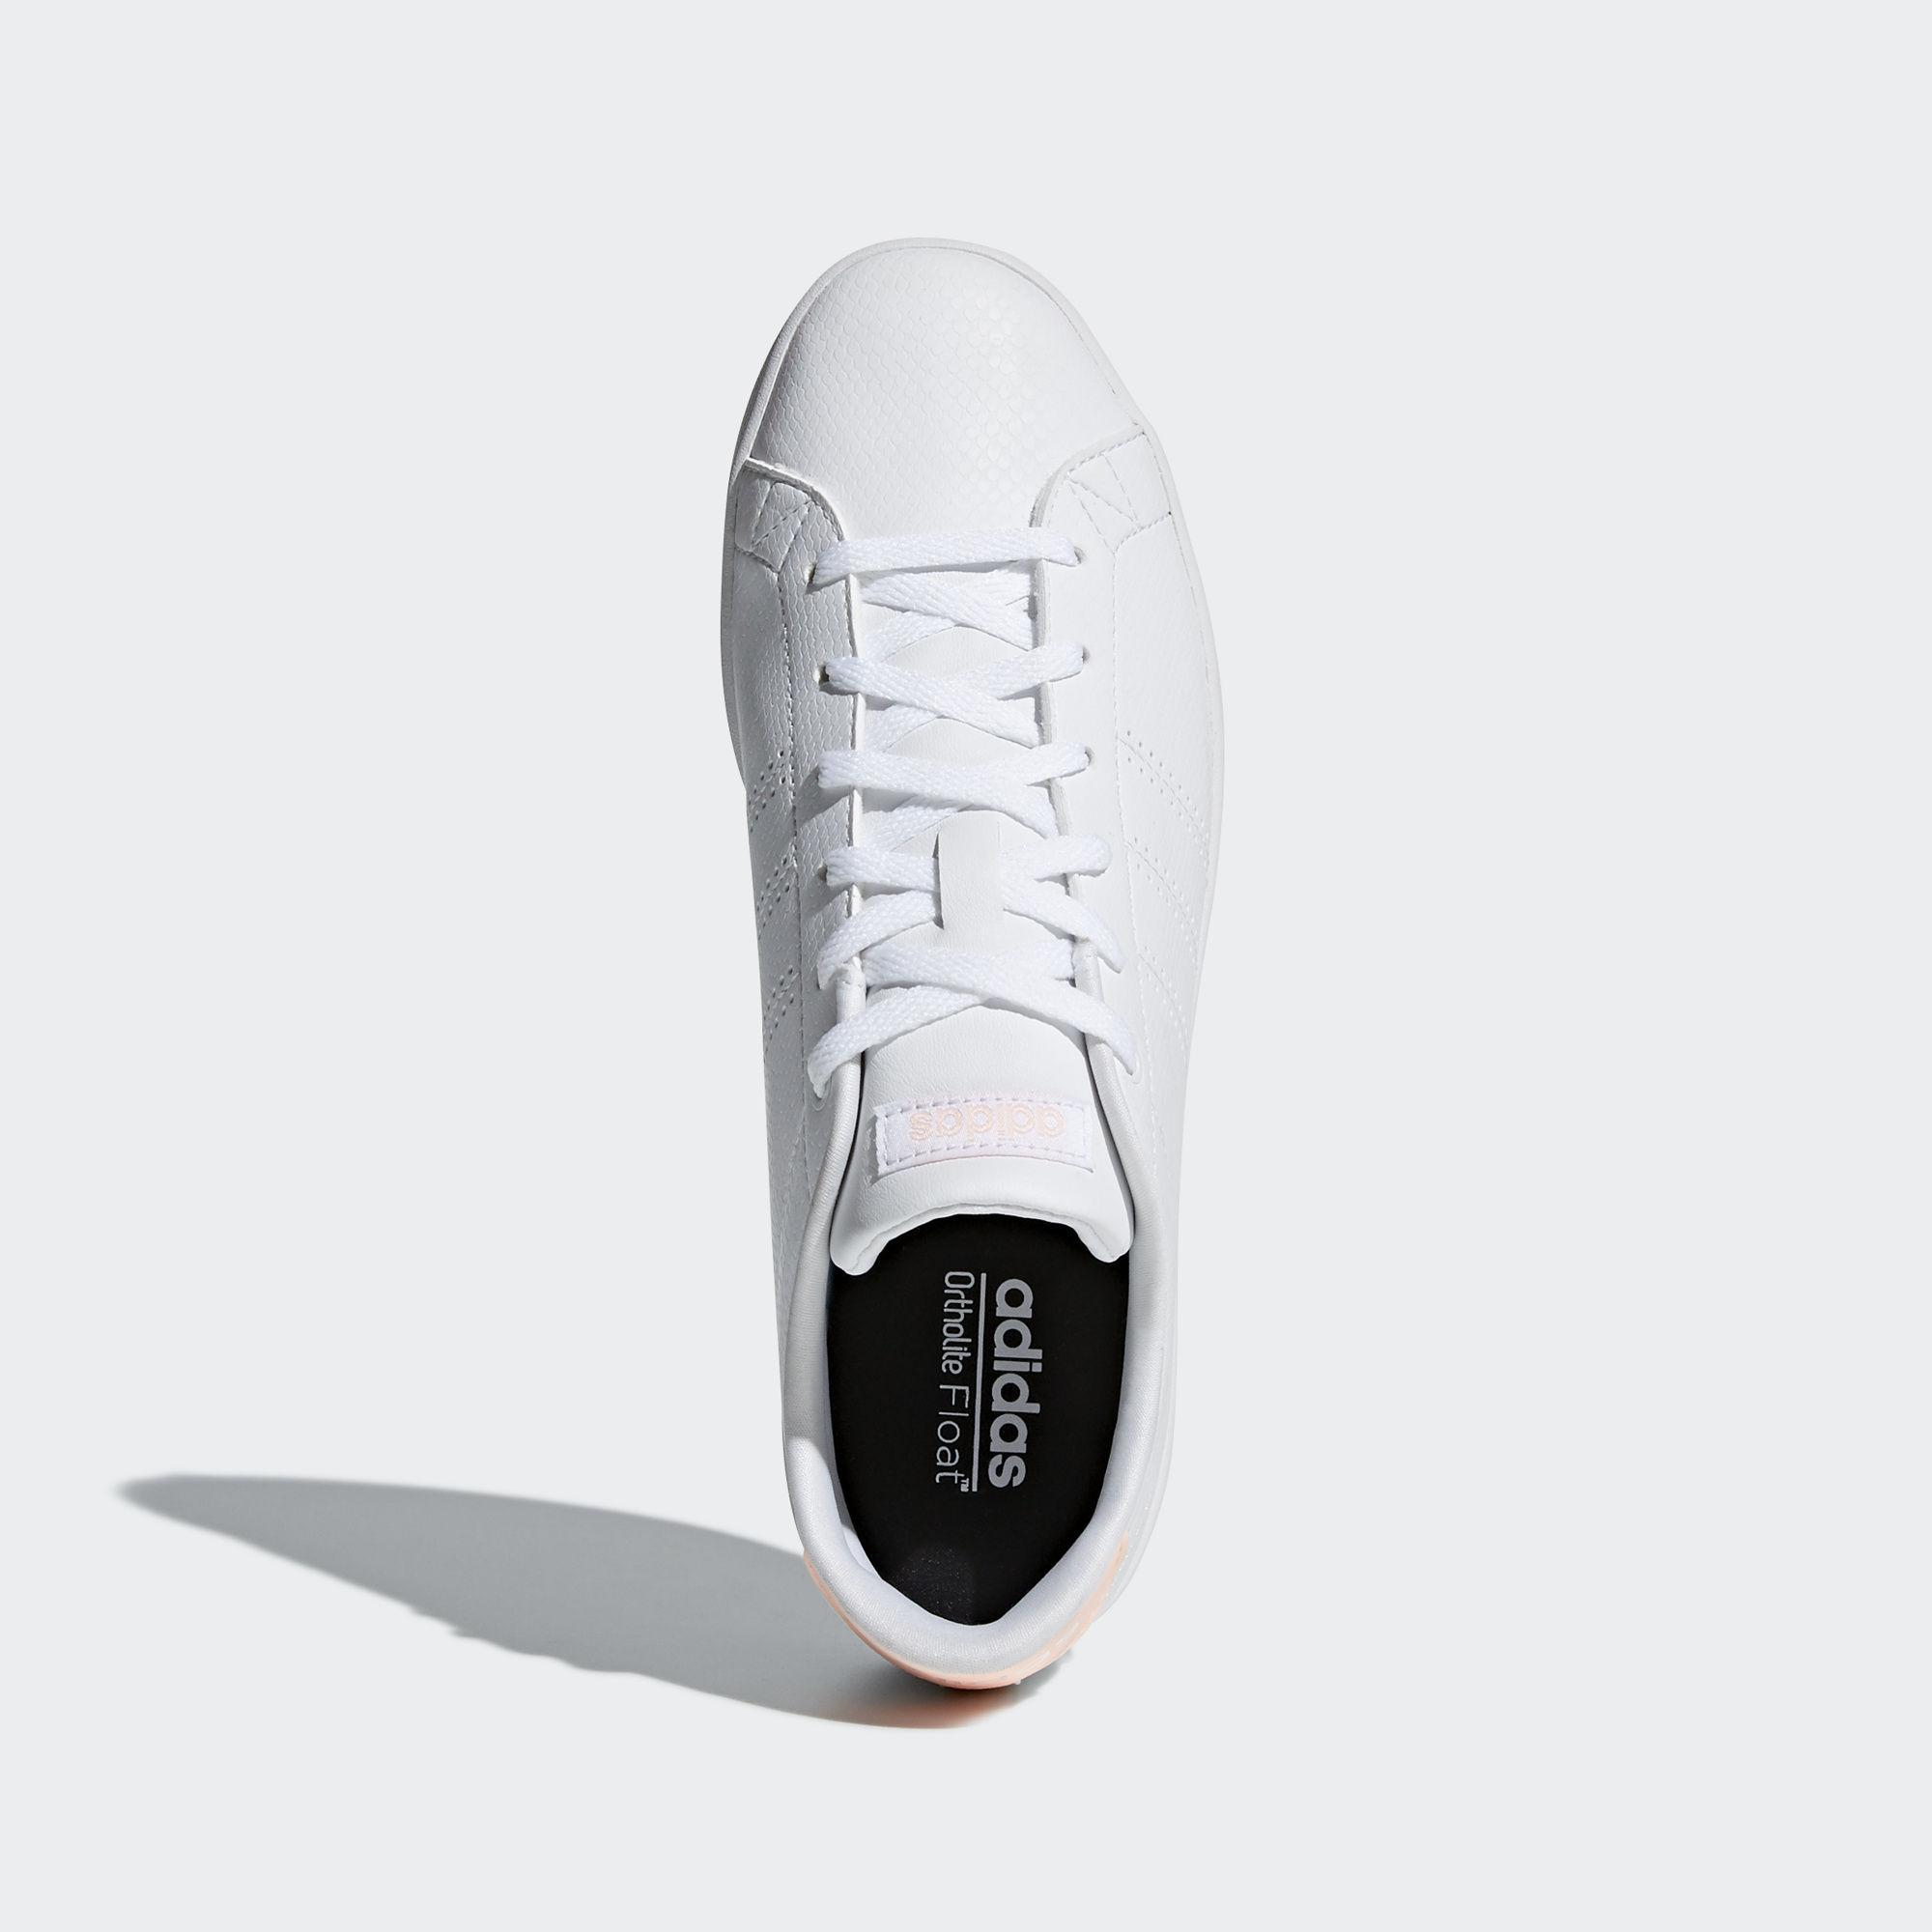 Adidas Advantage Clean QT / Turnschuhe Damen Ftwr Weiß / QT Ftwr Weiß / Clear Orange im Online Shop von SportScheck kaufen Gute Qualität beliebte Schuhe 30c830